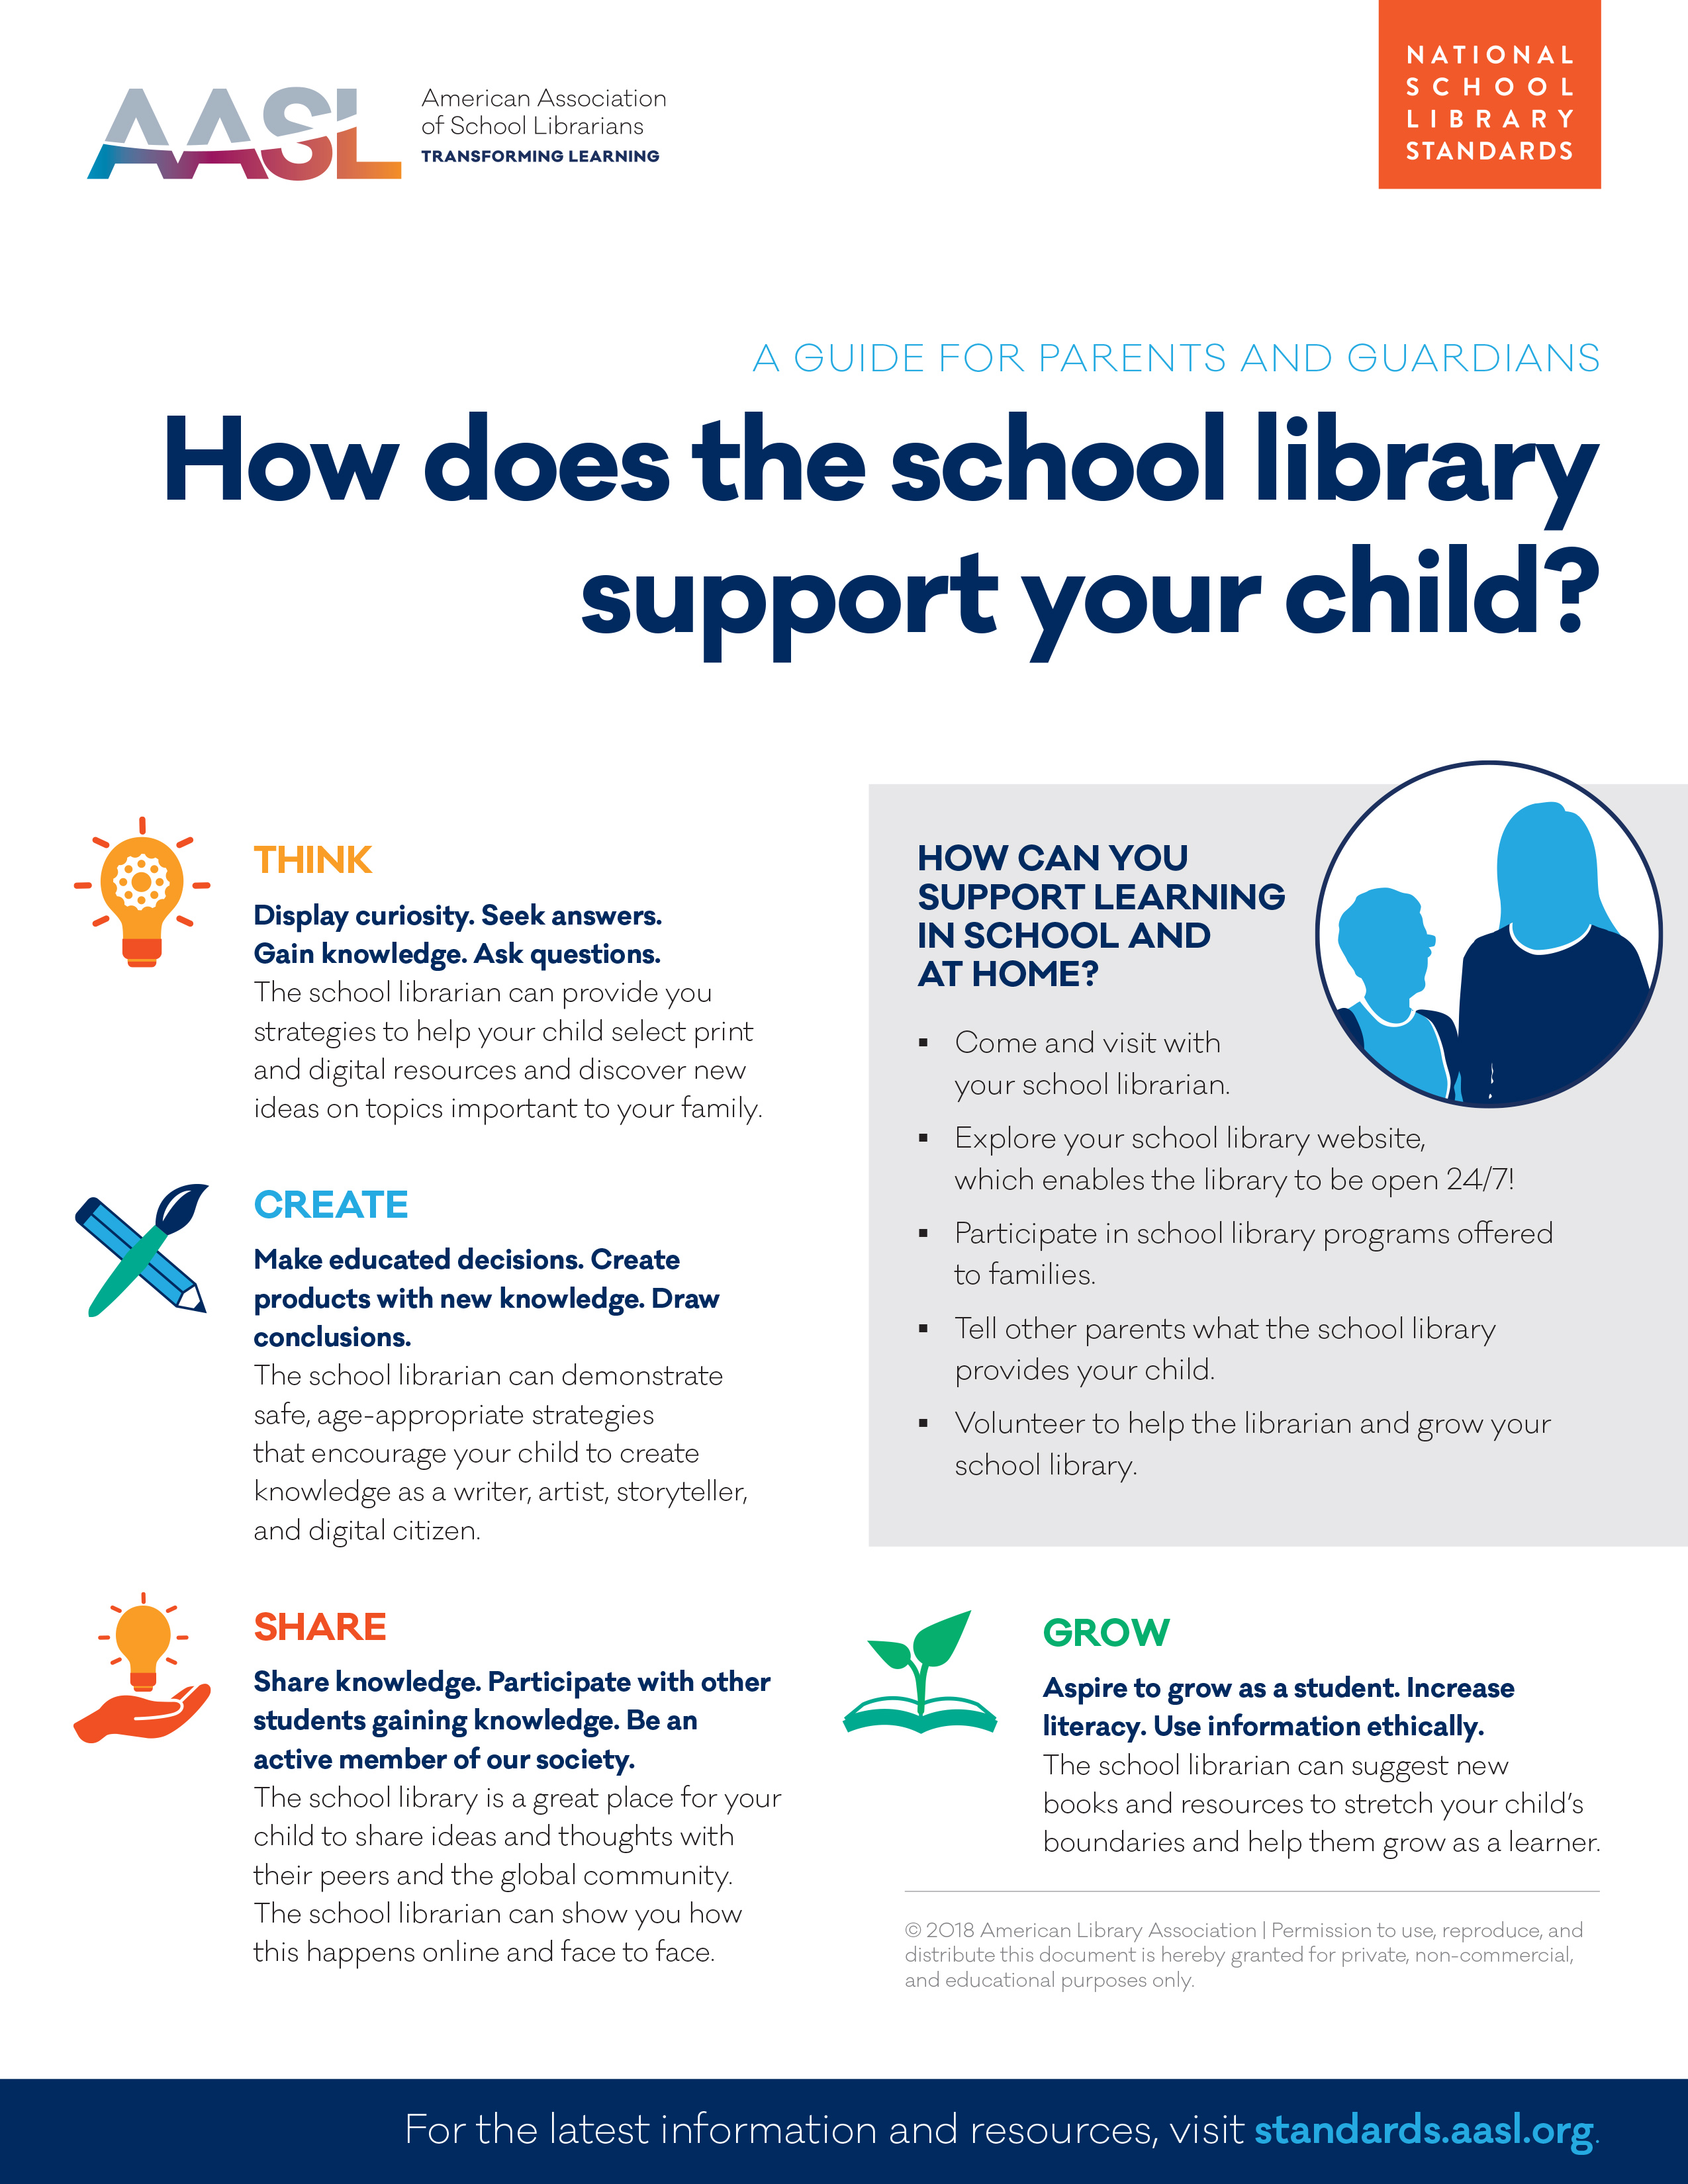 How does the school library support your child?